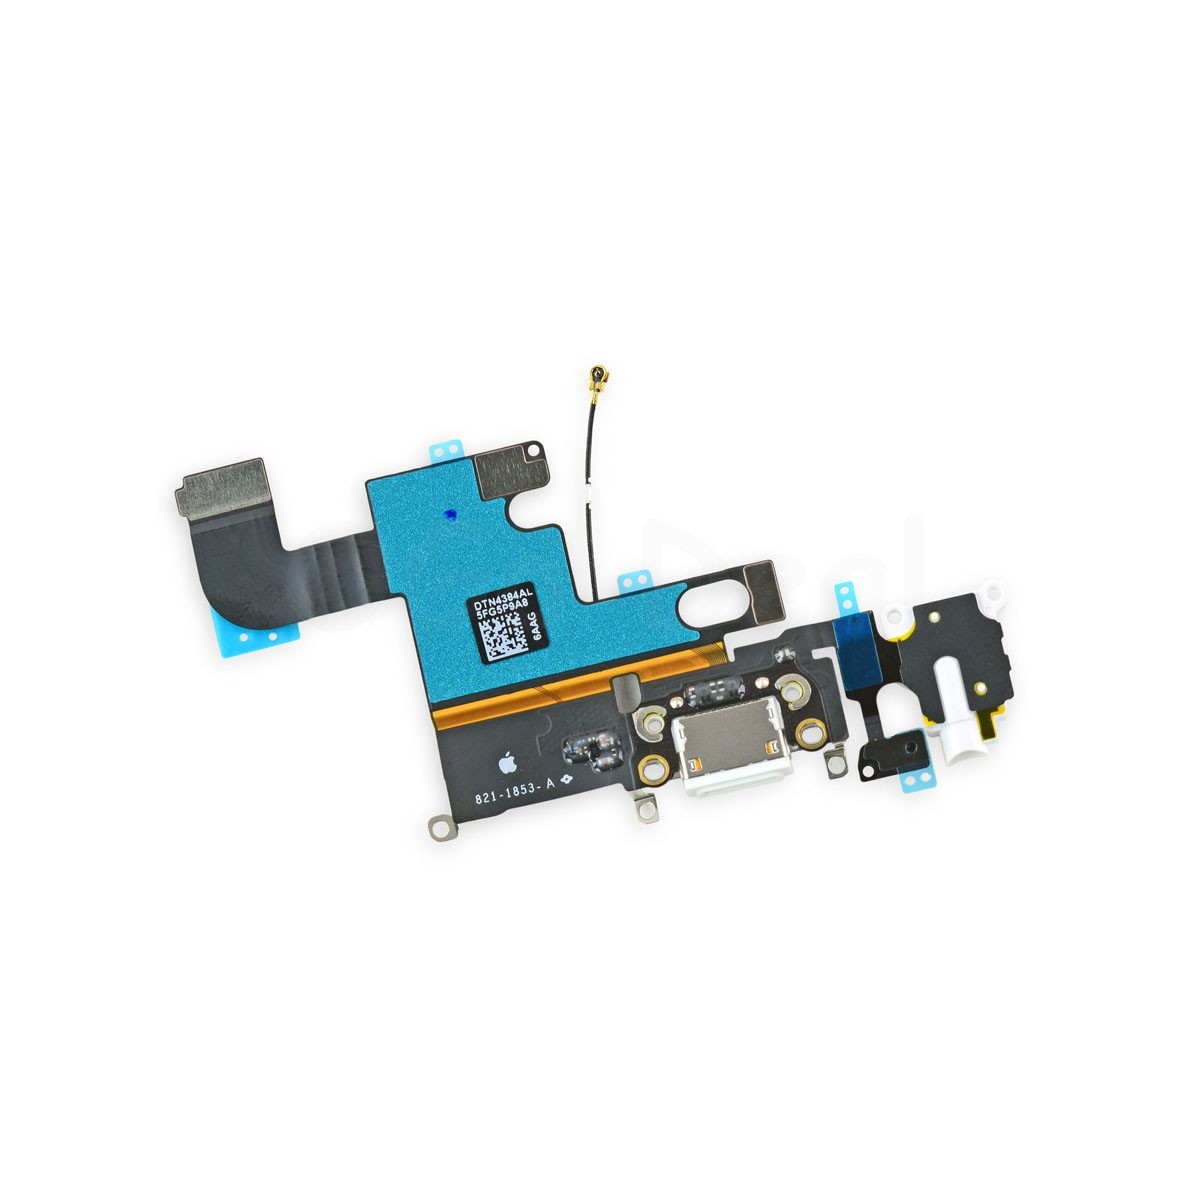 promo code c9f5f 47838 For Apple iPhone 6 Charging Dock Connector and Headphone Jack Flex Cable  Replacement, High Quality, White